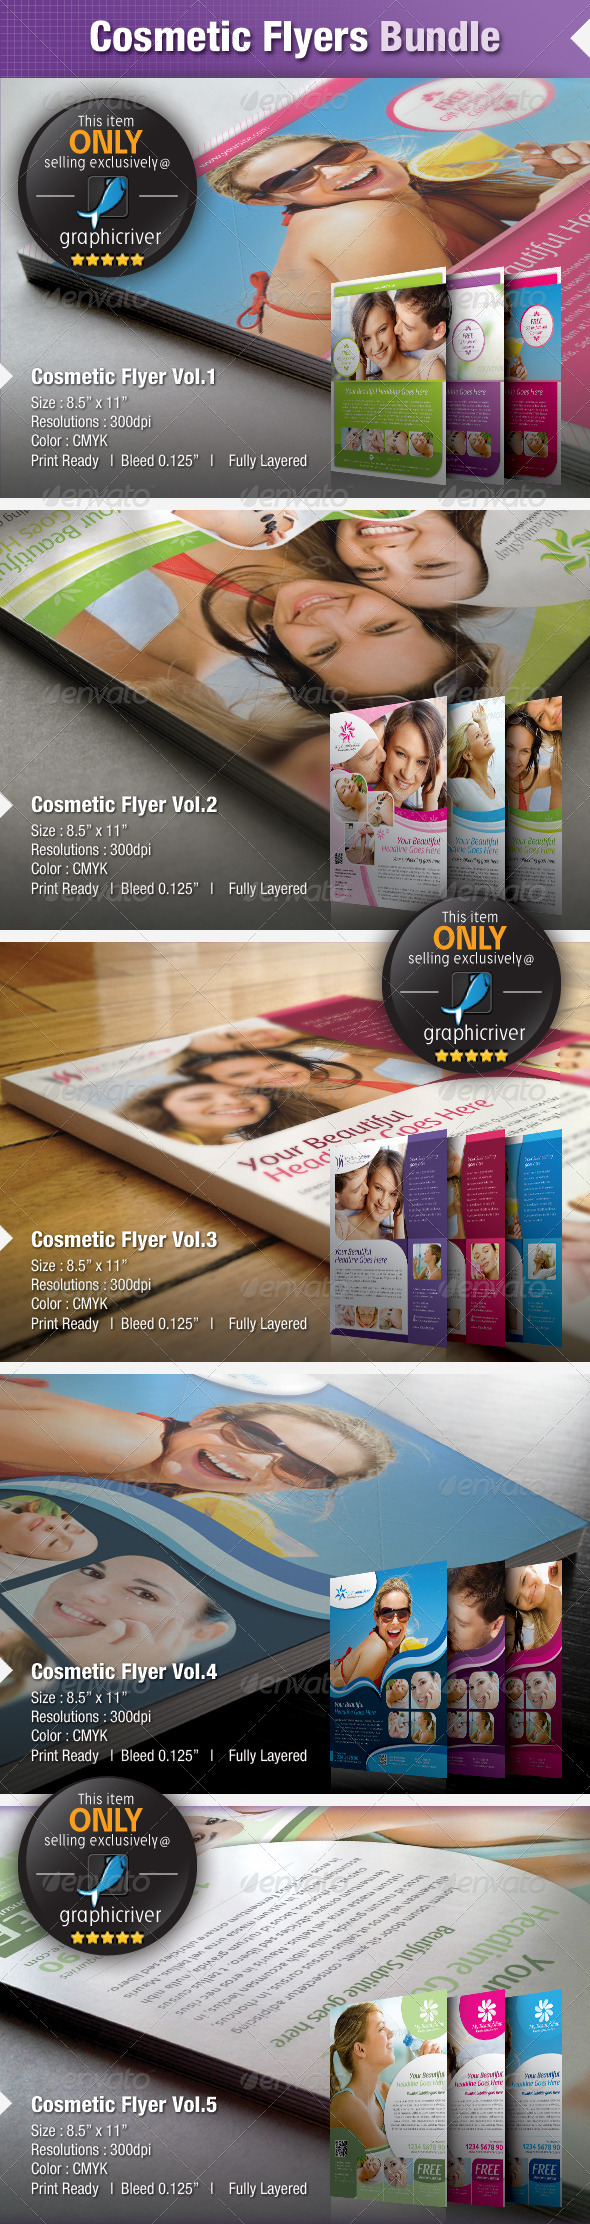 GraphicRiver Cosmetic Flyers Bundle 4823573